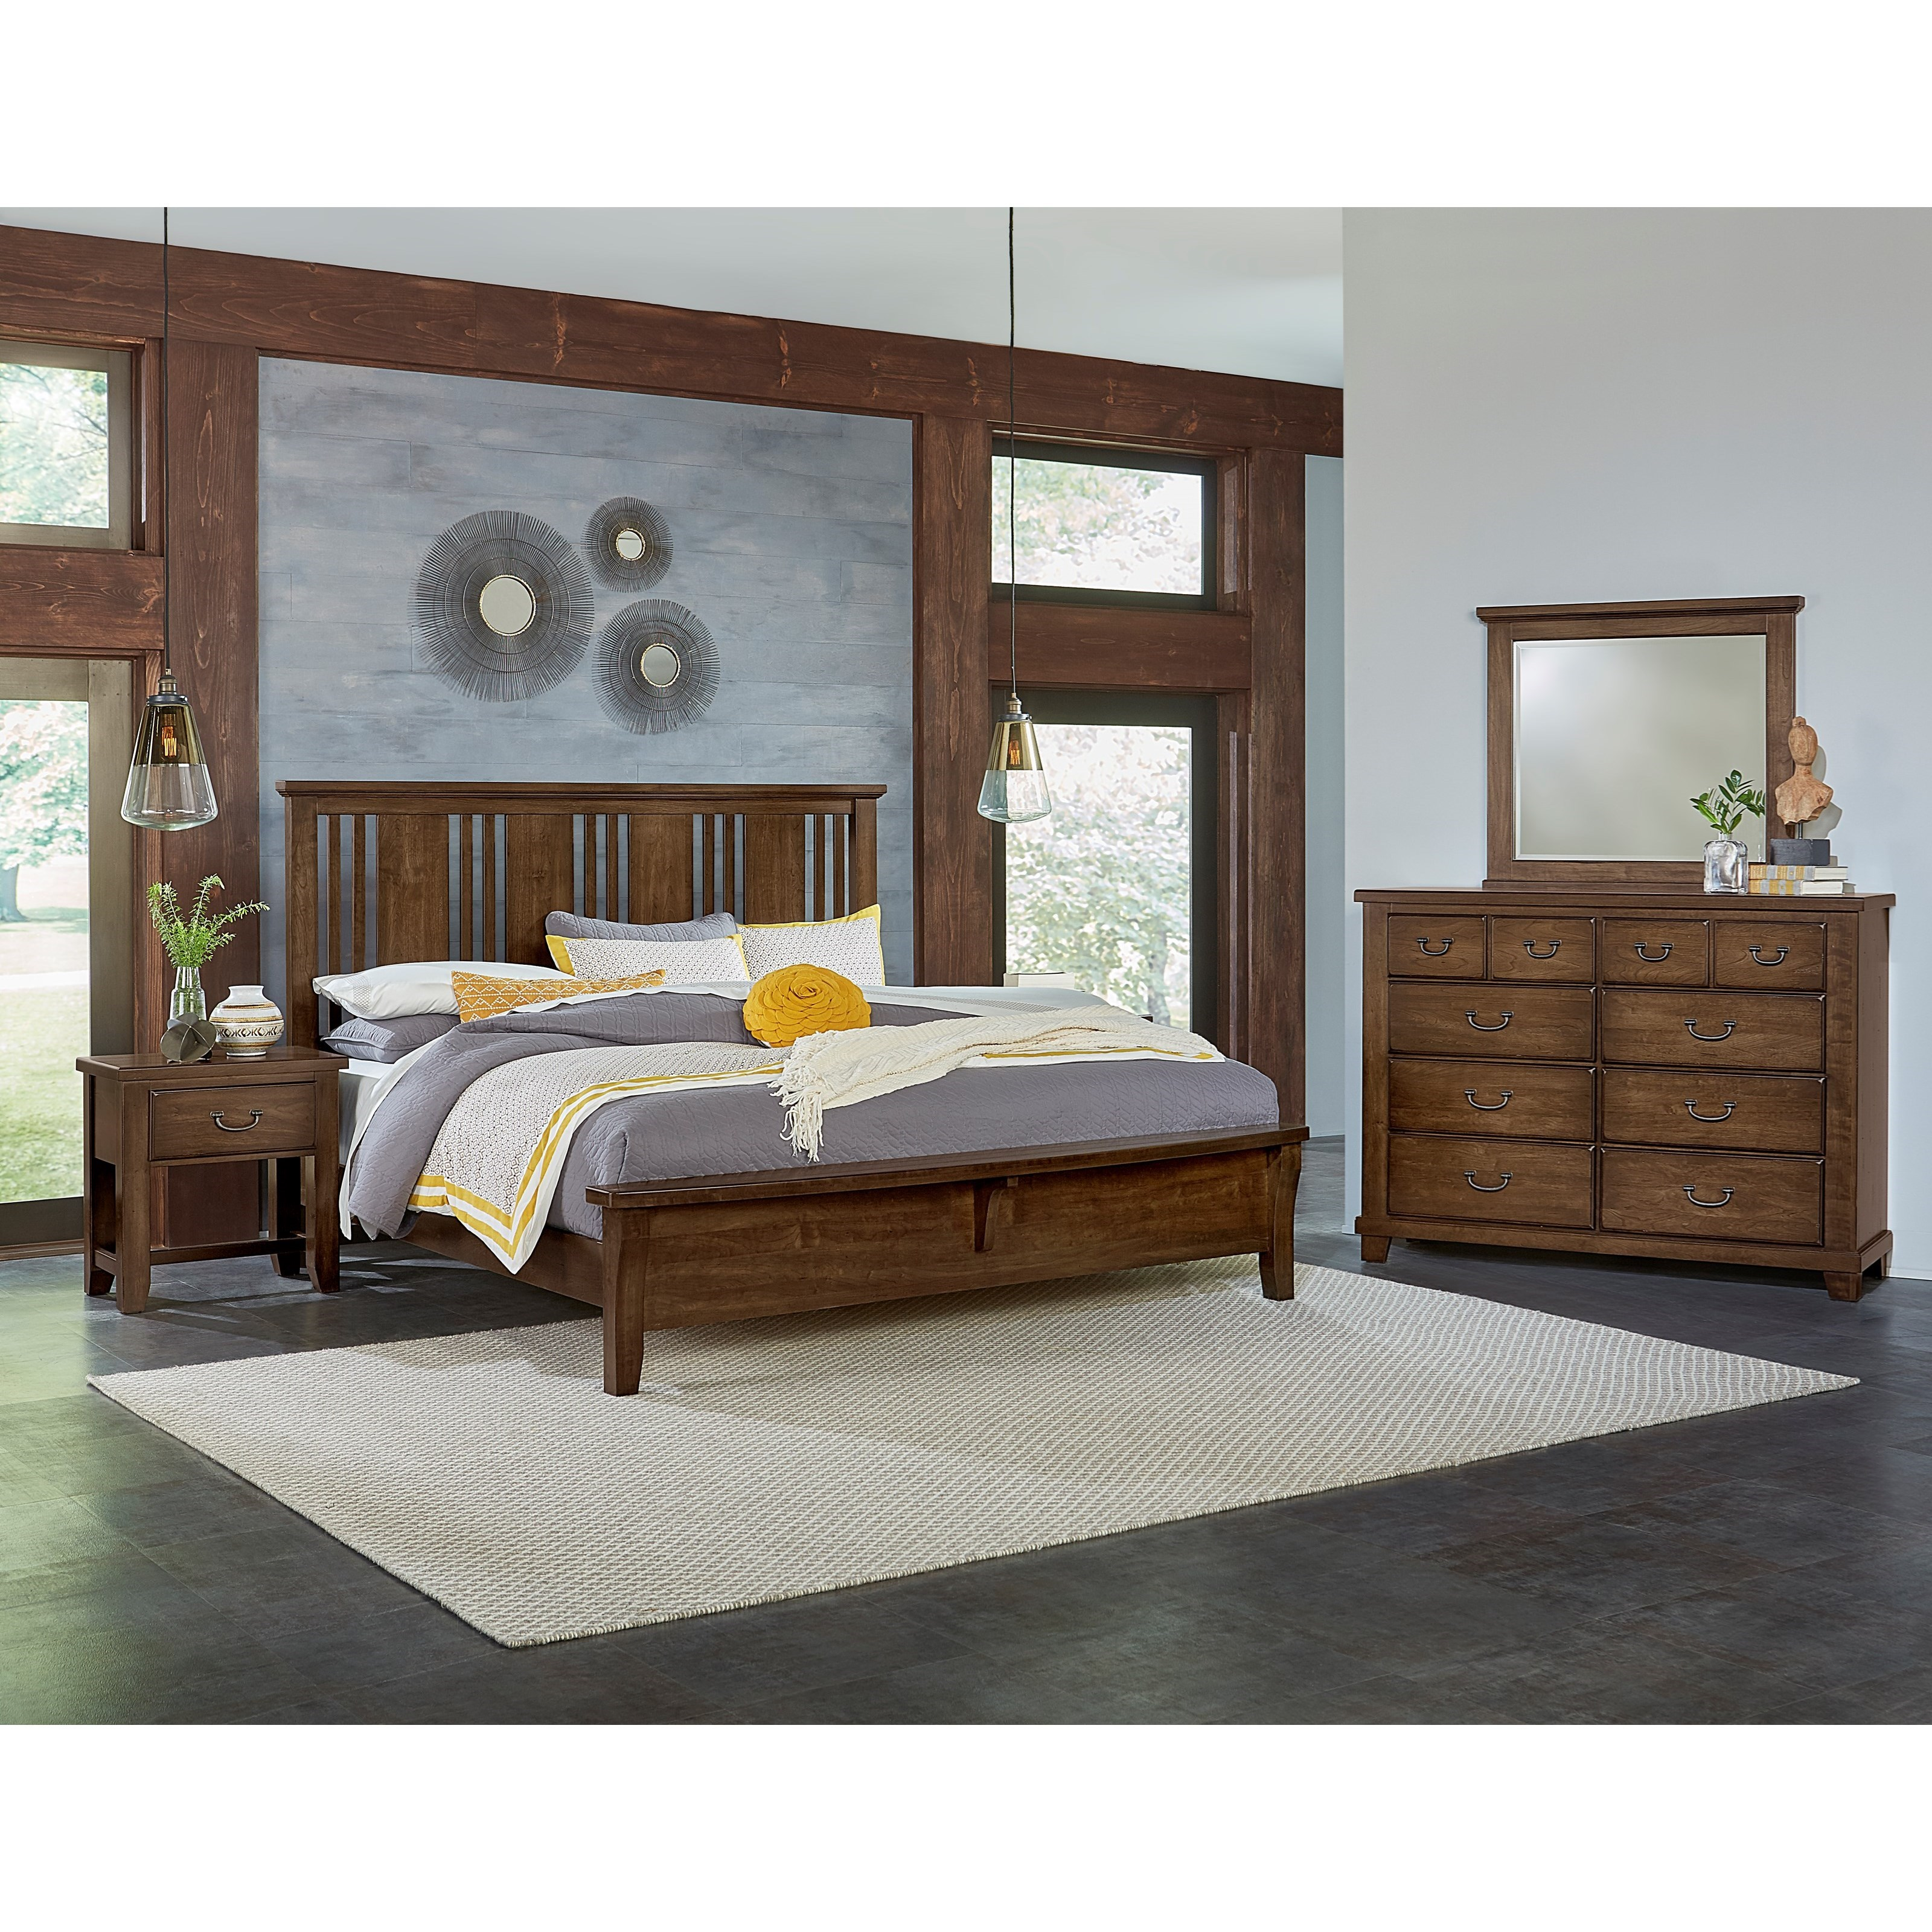 Vaughan Bassett American Cherry King Bedroom Group - Item Number: 417 K Bedroom Group 2